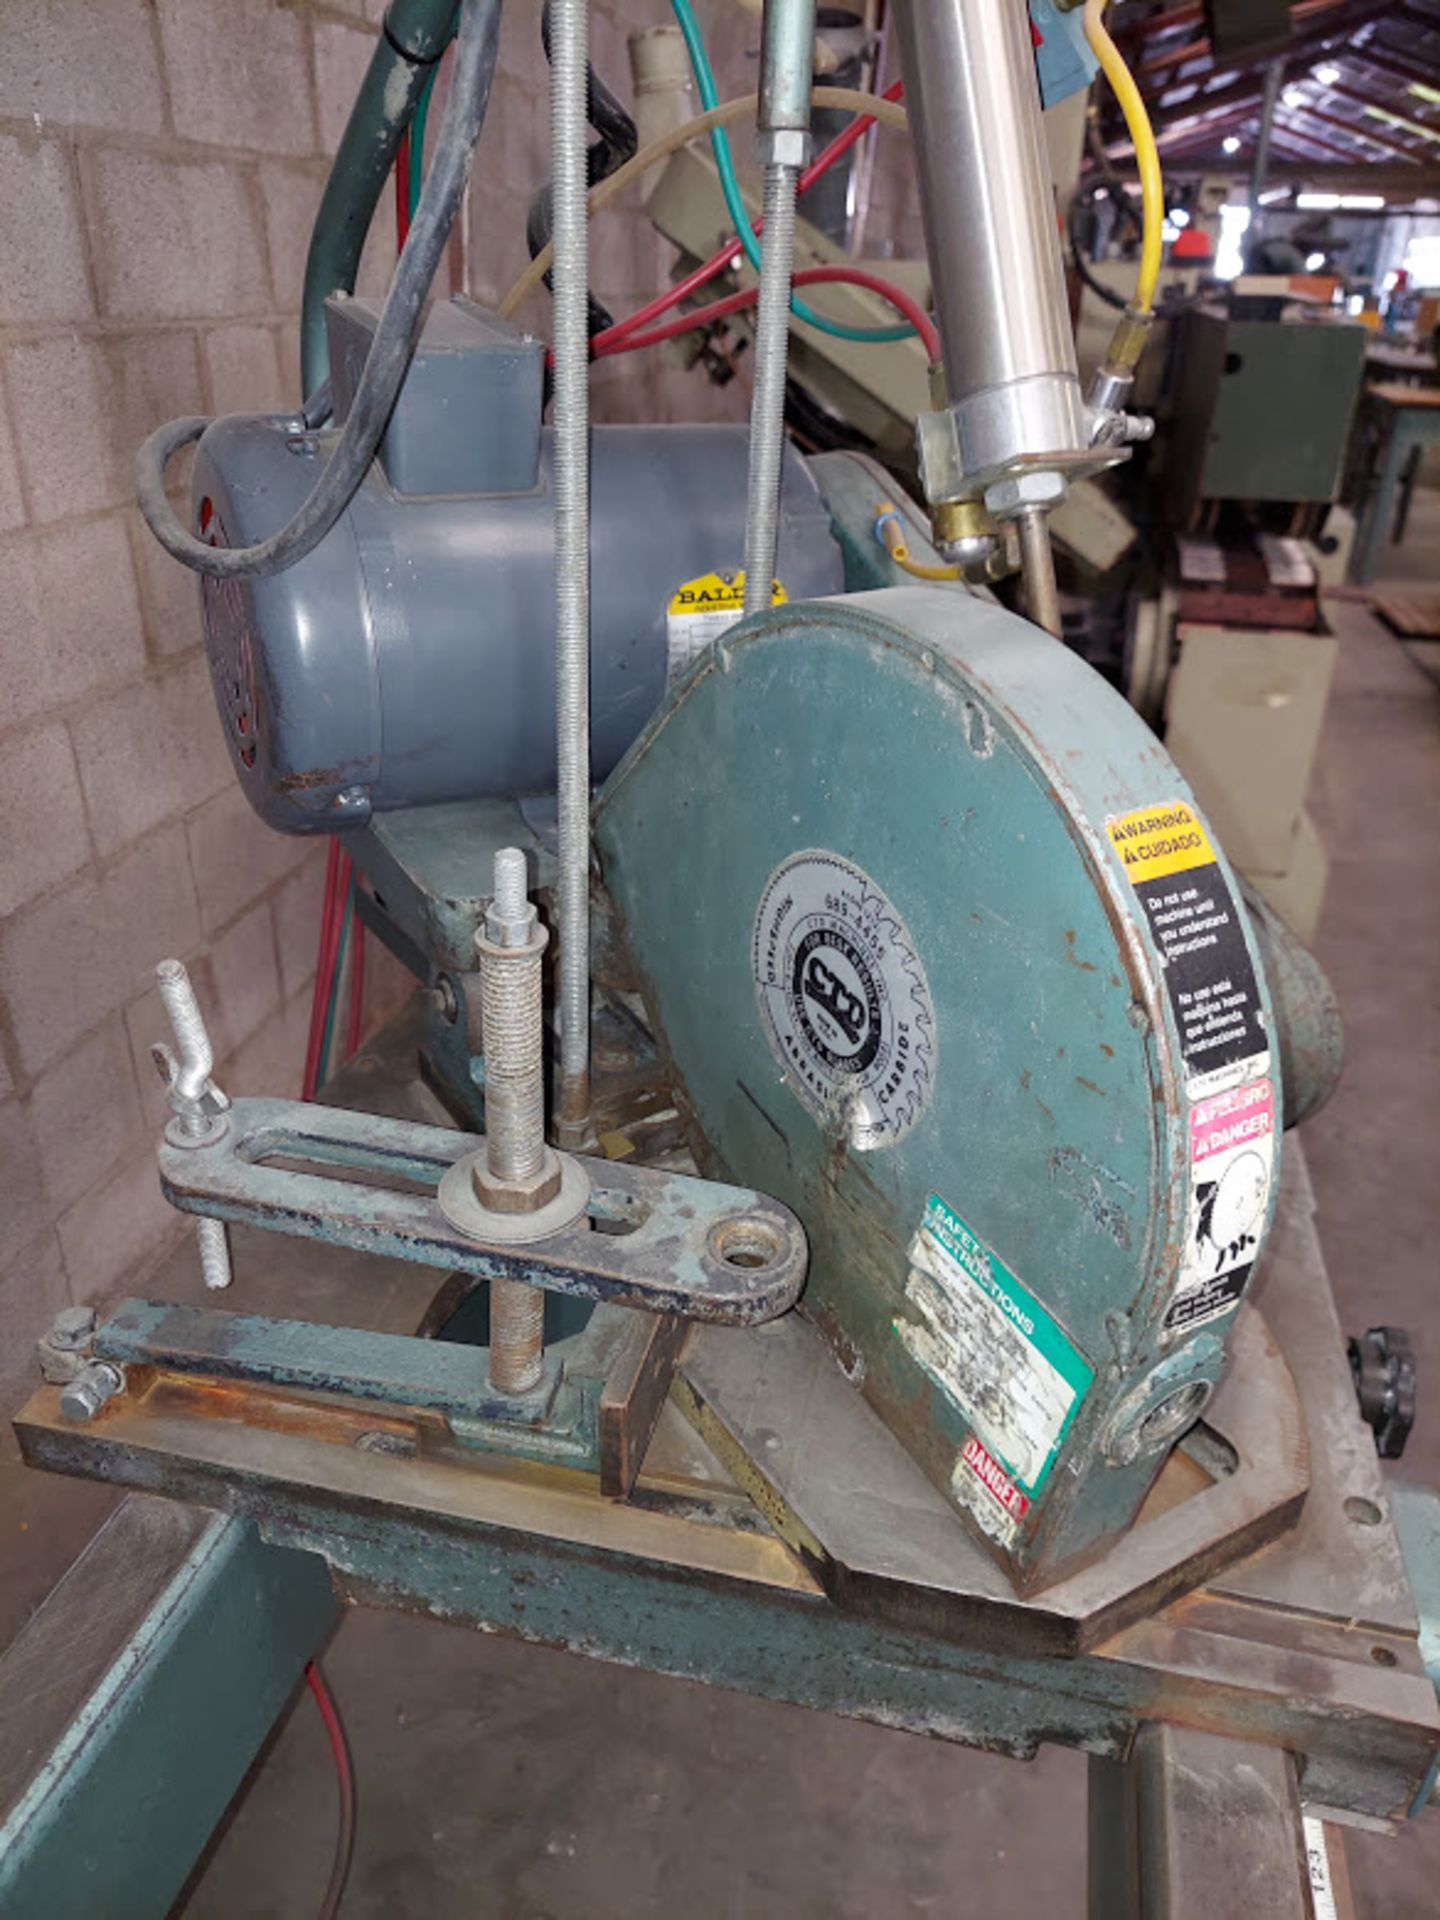 "CTD 12"" Double End Trim & Miter Saw, Model #DM200, 2 - Baldor 2 HP 230/460 Volts 3 Phase - Image 3 of 6"